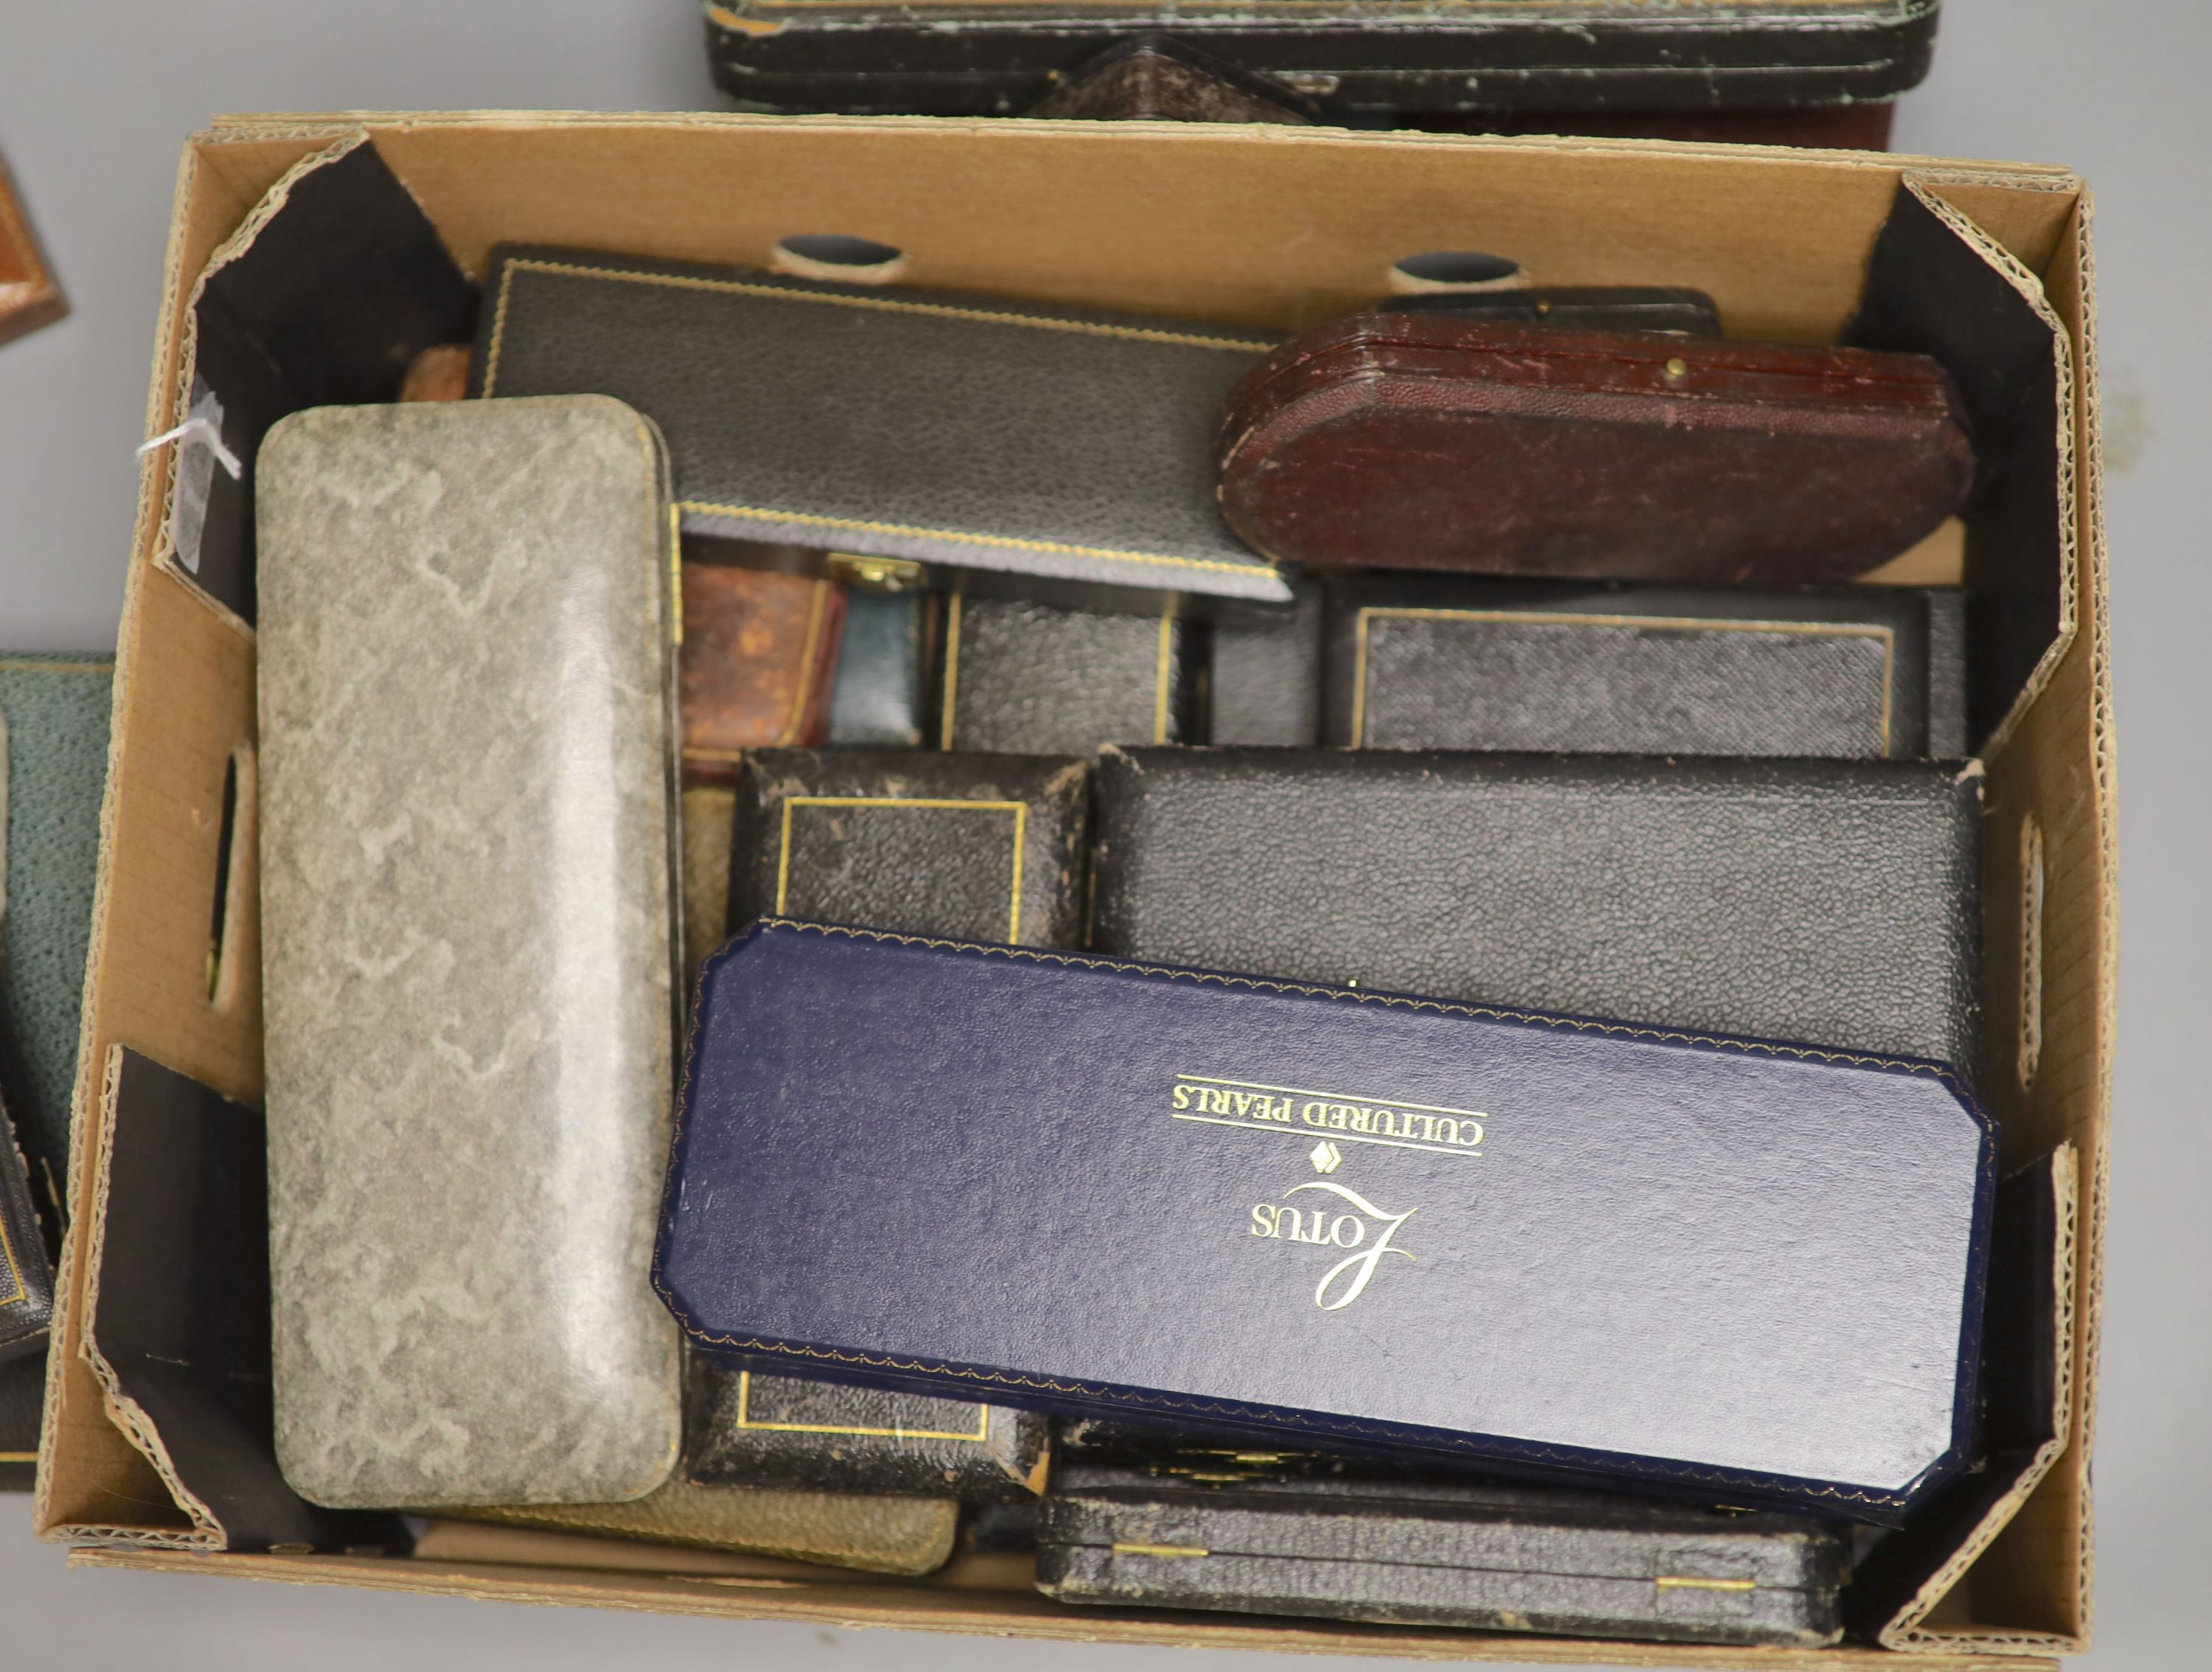 Twenty assorted jewellery and cutlery boxes including a gilt tooled leather box by Mappin & Webb. - Image 2 of 2